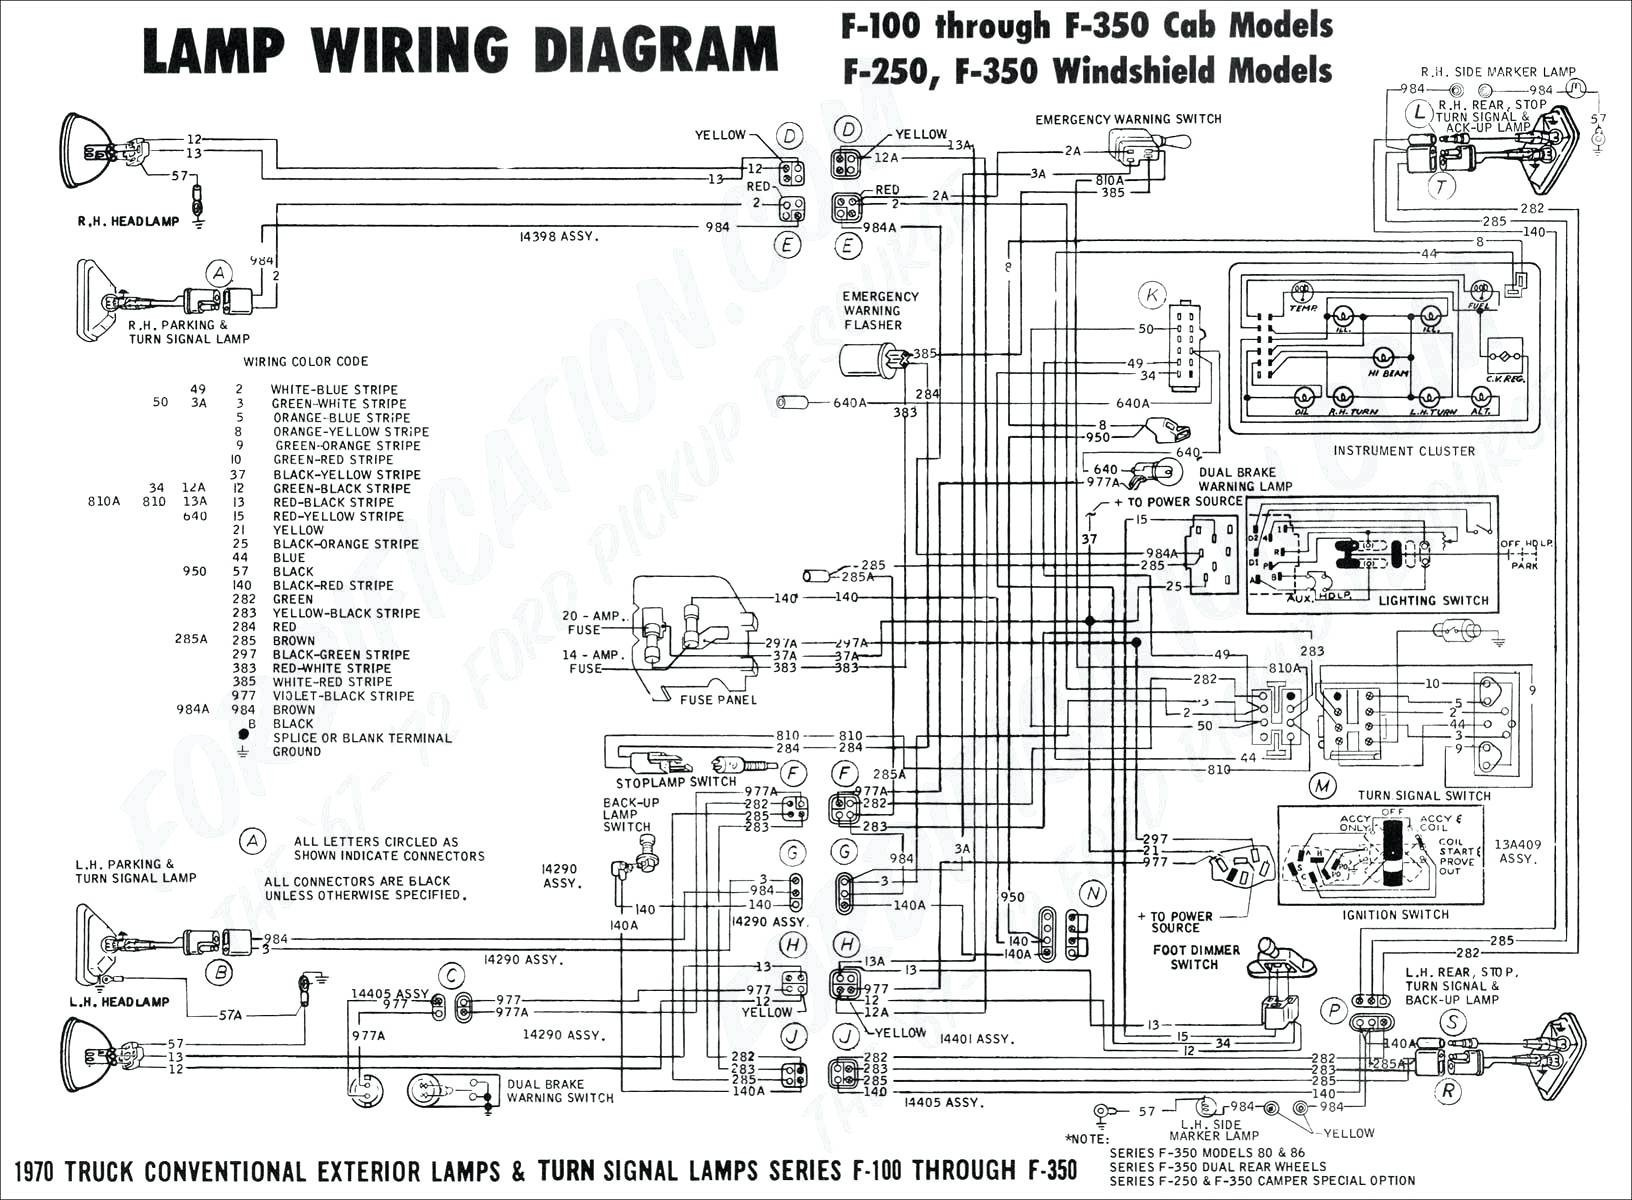 2000 Ford F250 Alternator Wiring Diagram Free Download Wiring 2000 Ford Expedition Alternator Wiring 2000 Ford